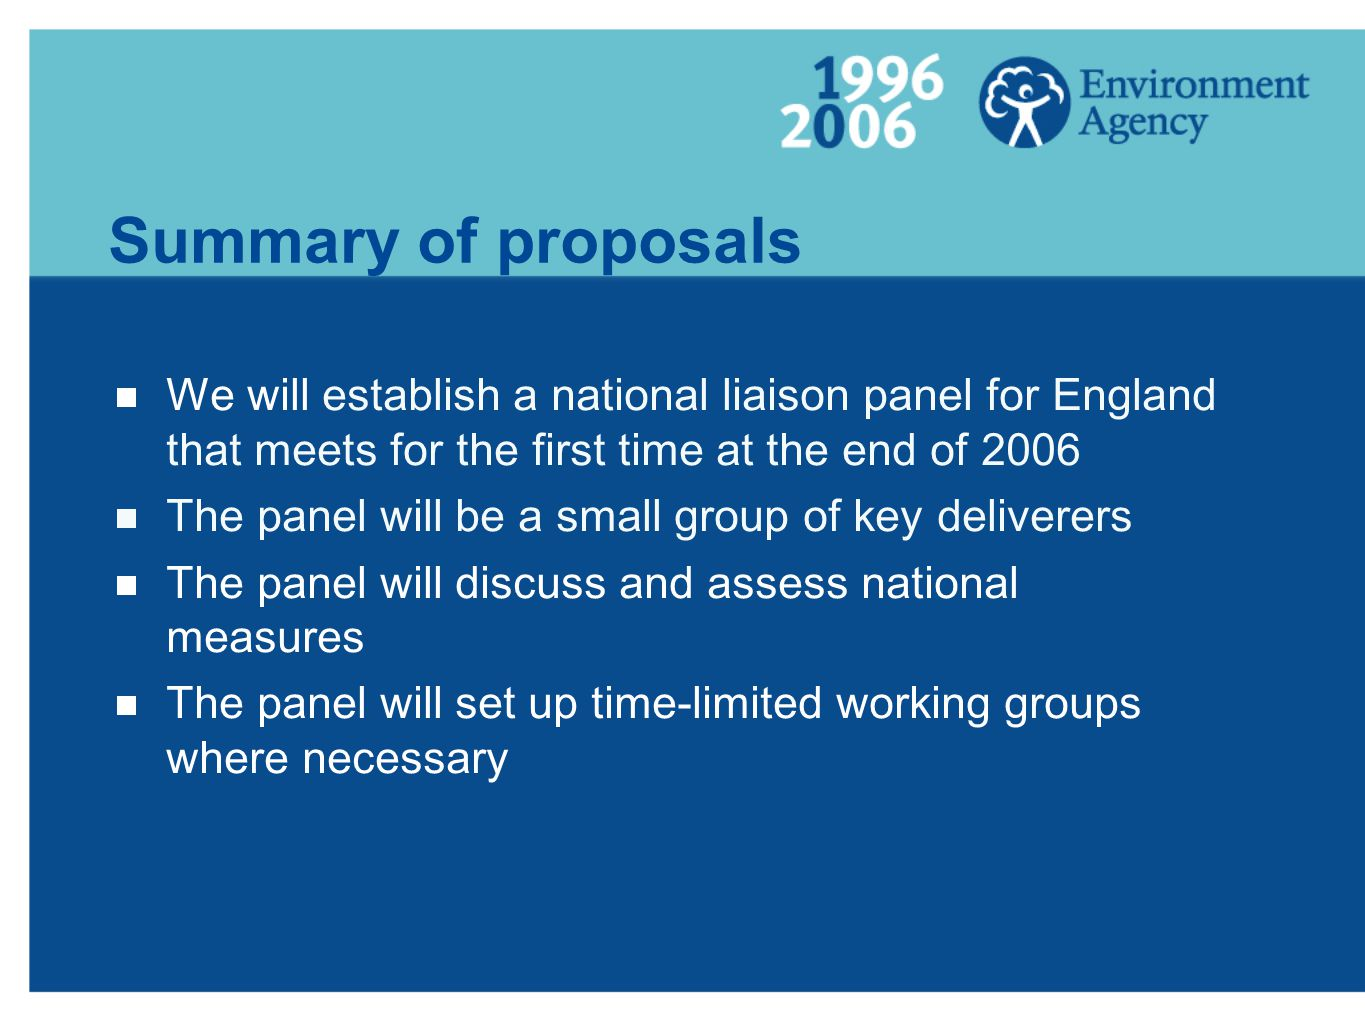 Summary of proposals We will establish a national liaison panel for England that meets for the first time at the end of 2006 The panel will be a small group of key deliverers The panel will discuss and assess national measures The panel will set up time-limited working groups where necessary